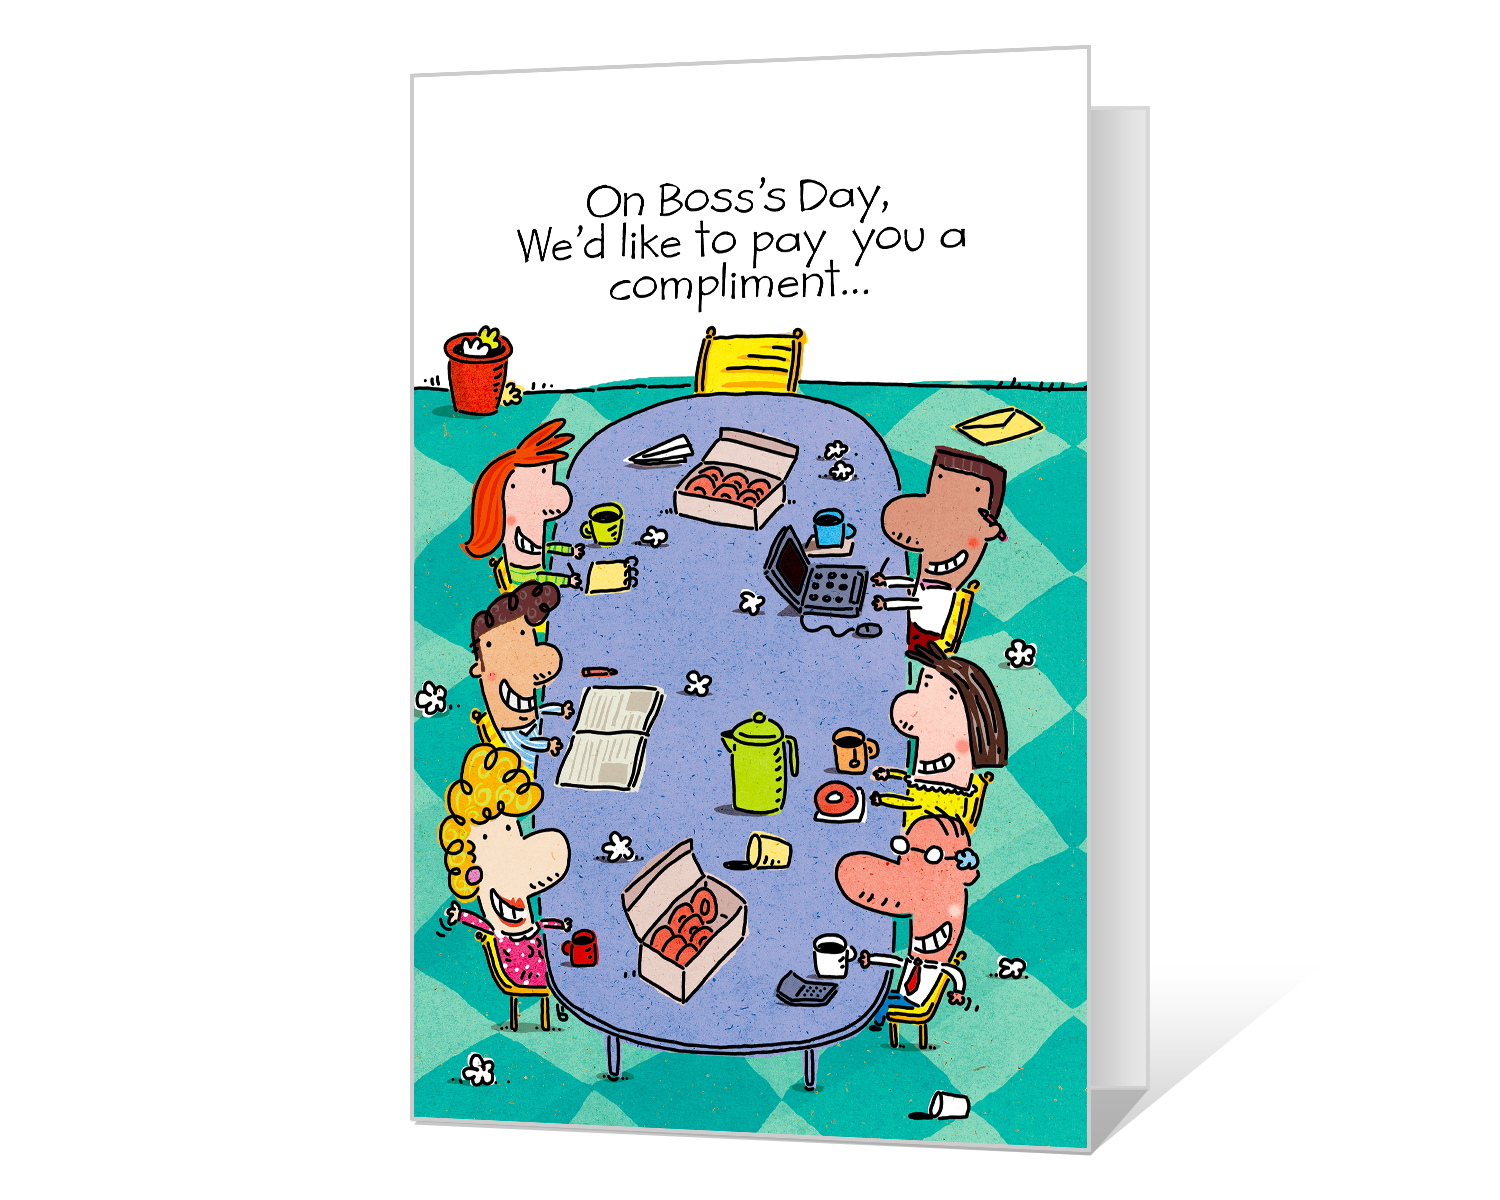 It's just a picture of Free Printable Boss's Day Cards regarding bosss